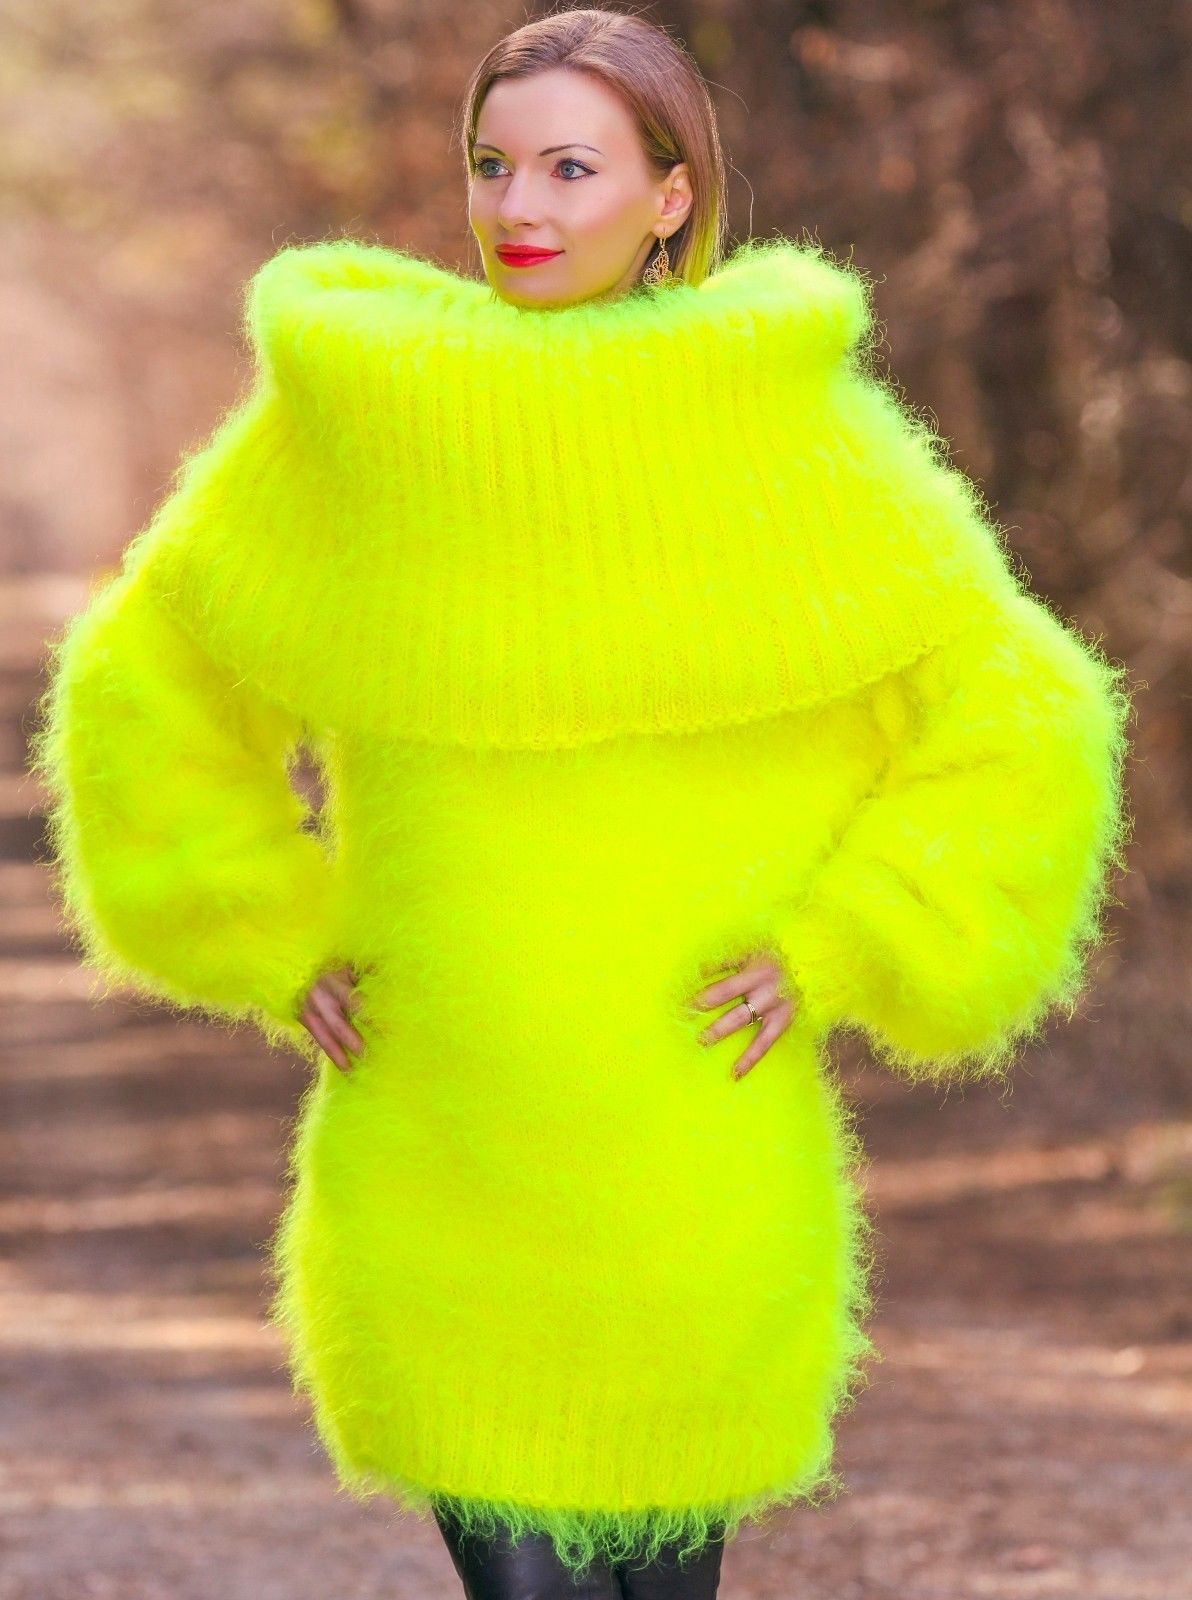 Neon Yellow Hand Knitted Mohair Sweater Fuzzy Huge Cowlneck Dress ...